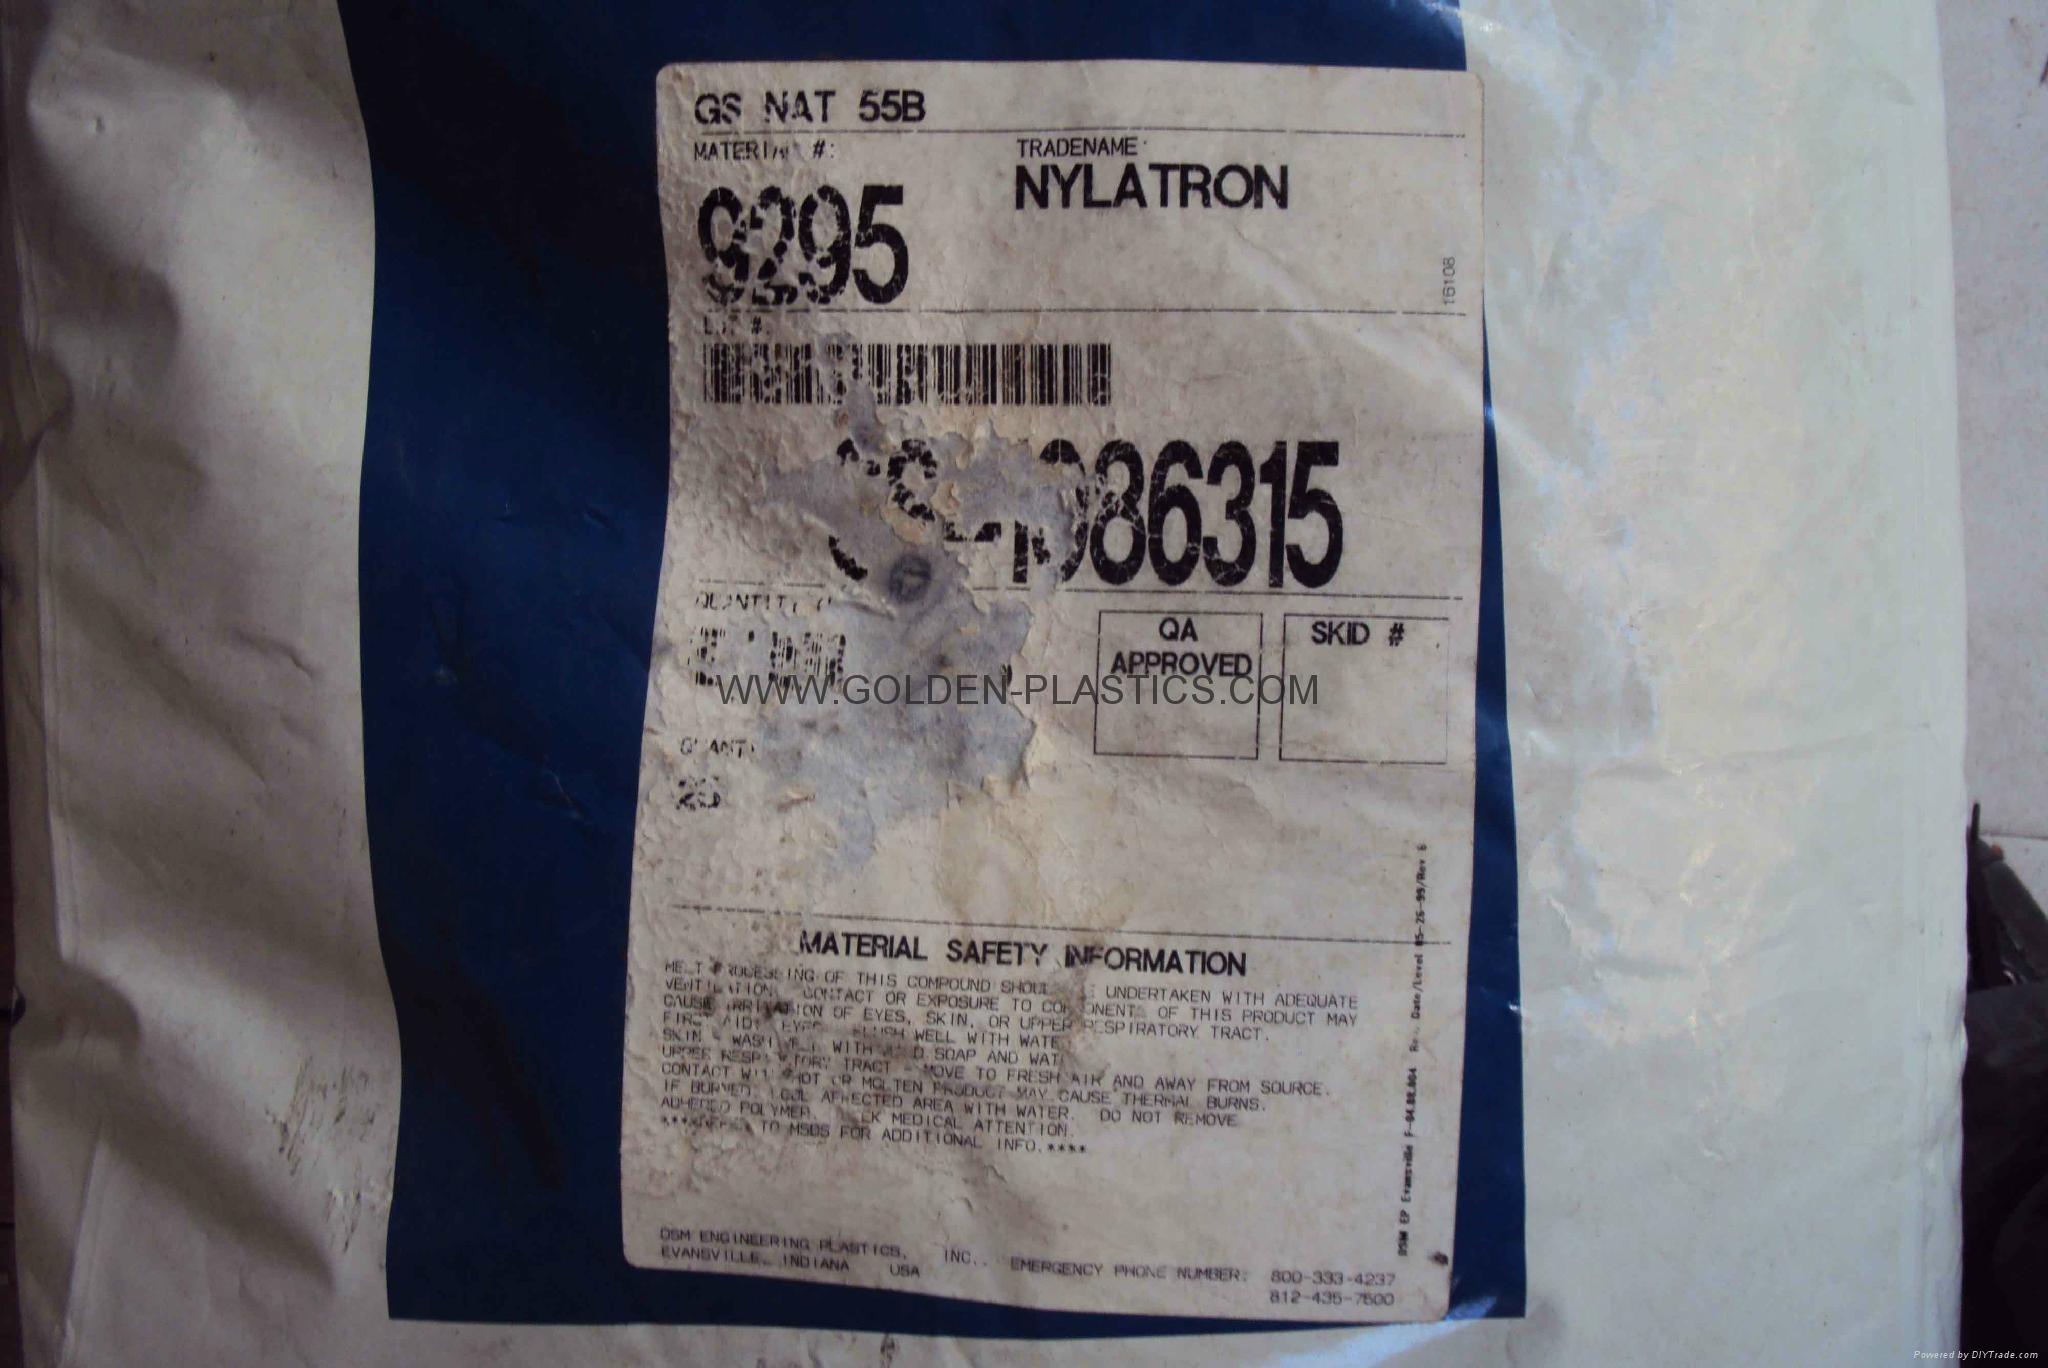 NYLATRON GS NAT 55B 9295